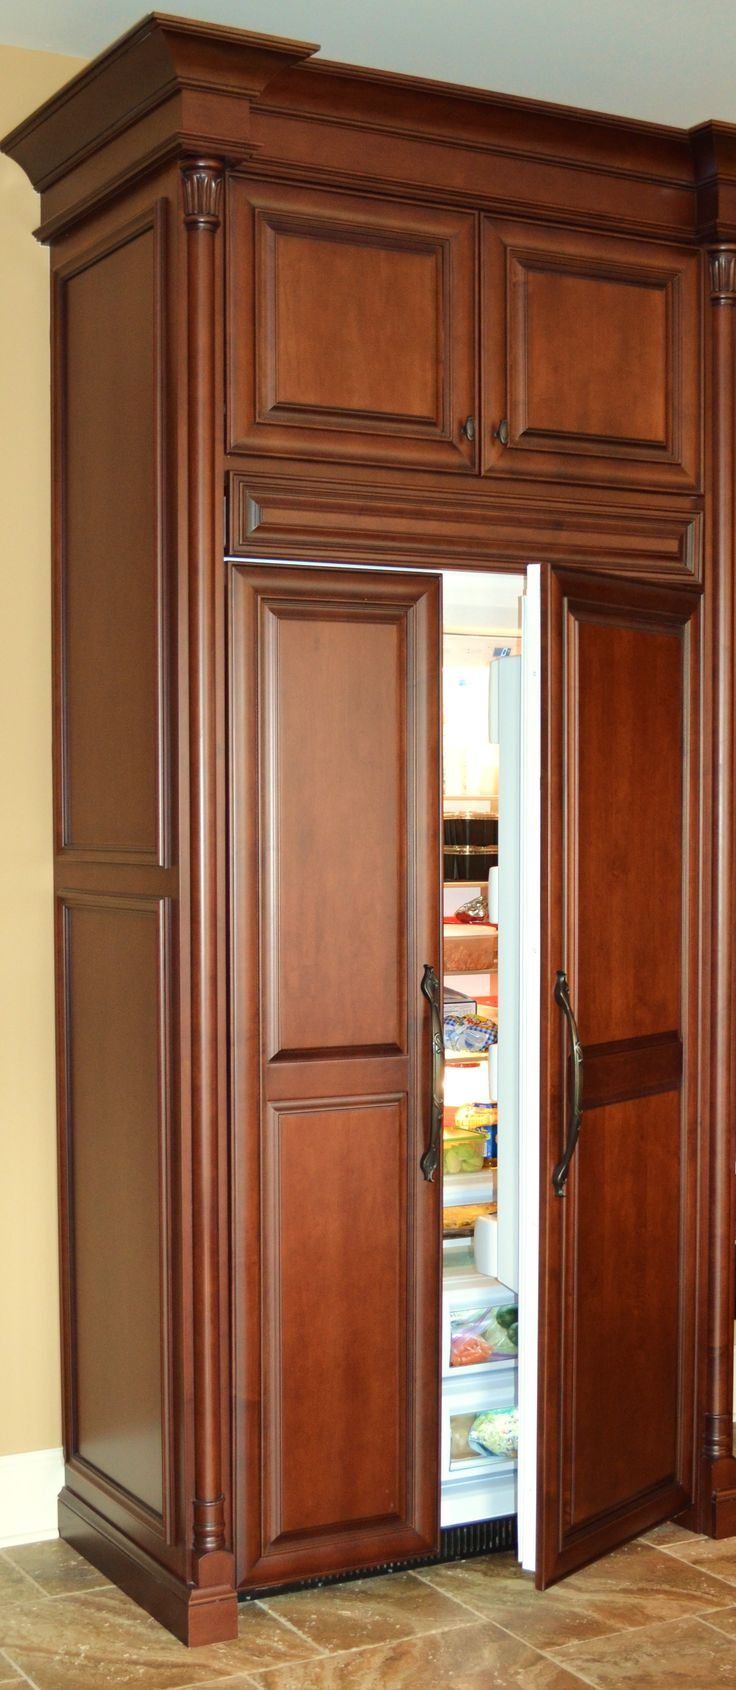 Wooden Refrigerator Cabinets ~ Wood panel refrigerator kitchens pinterest